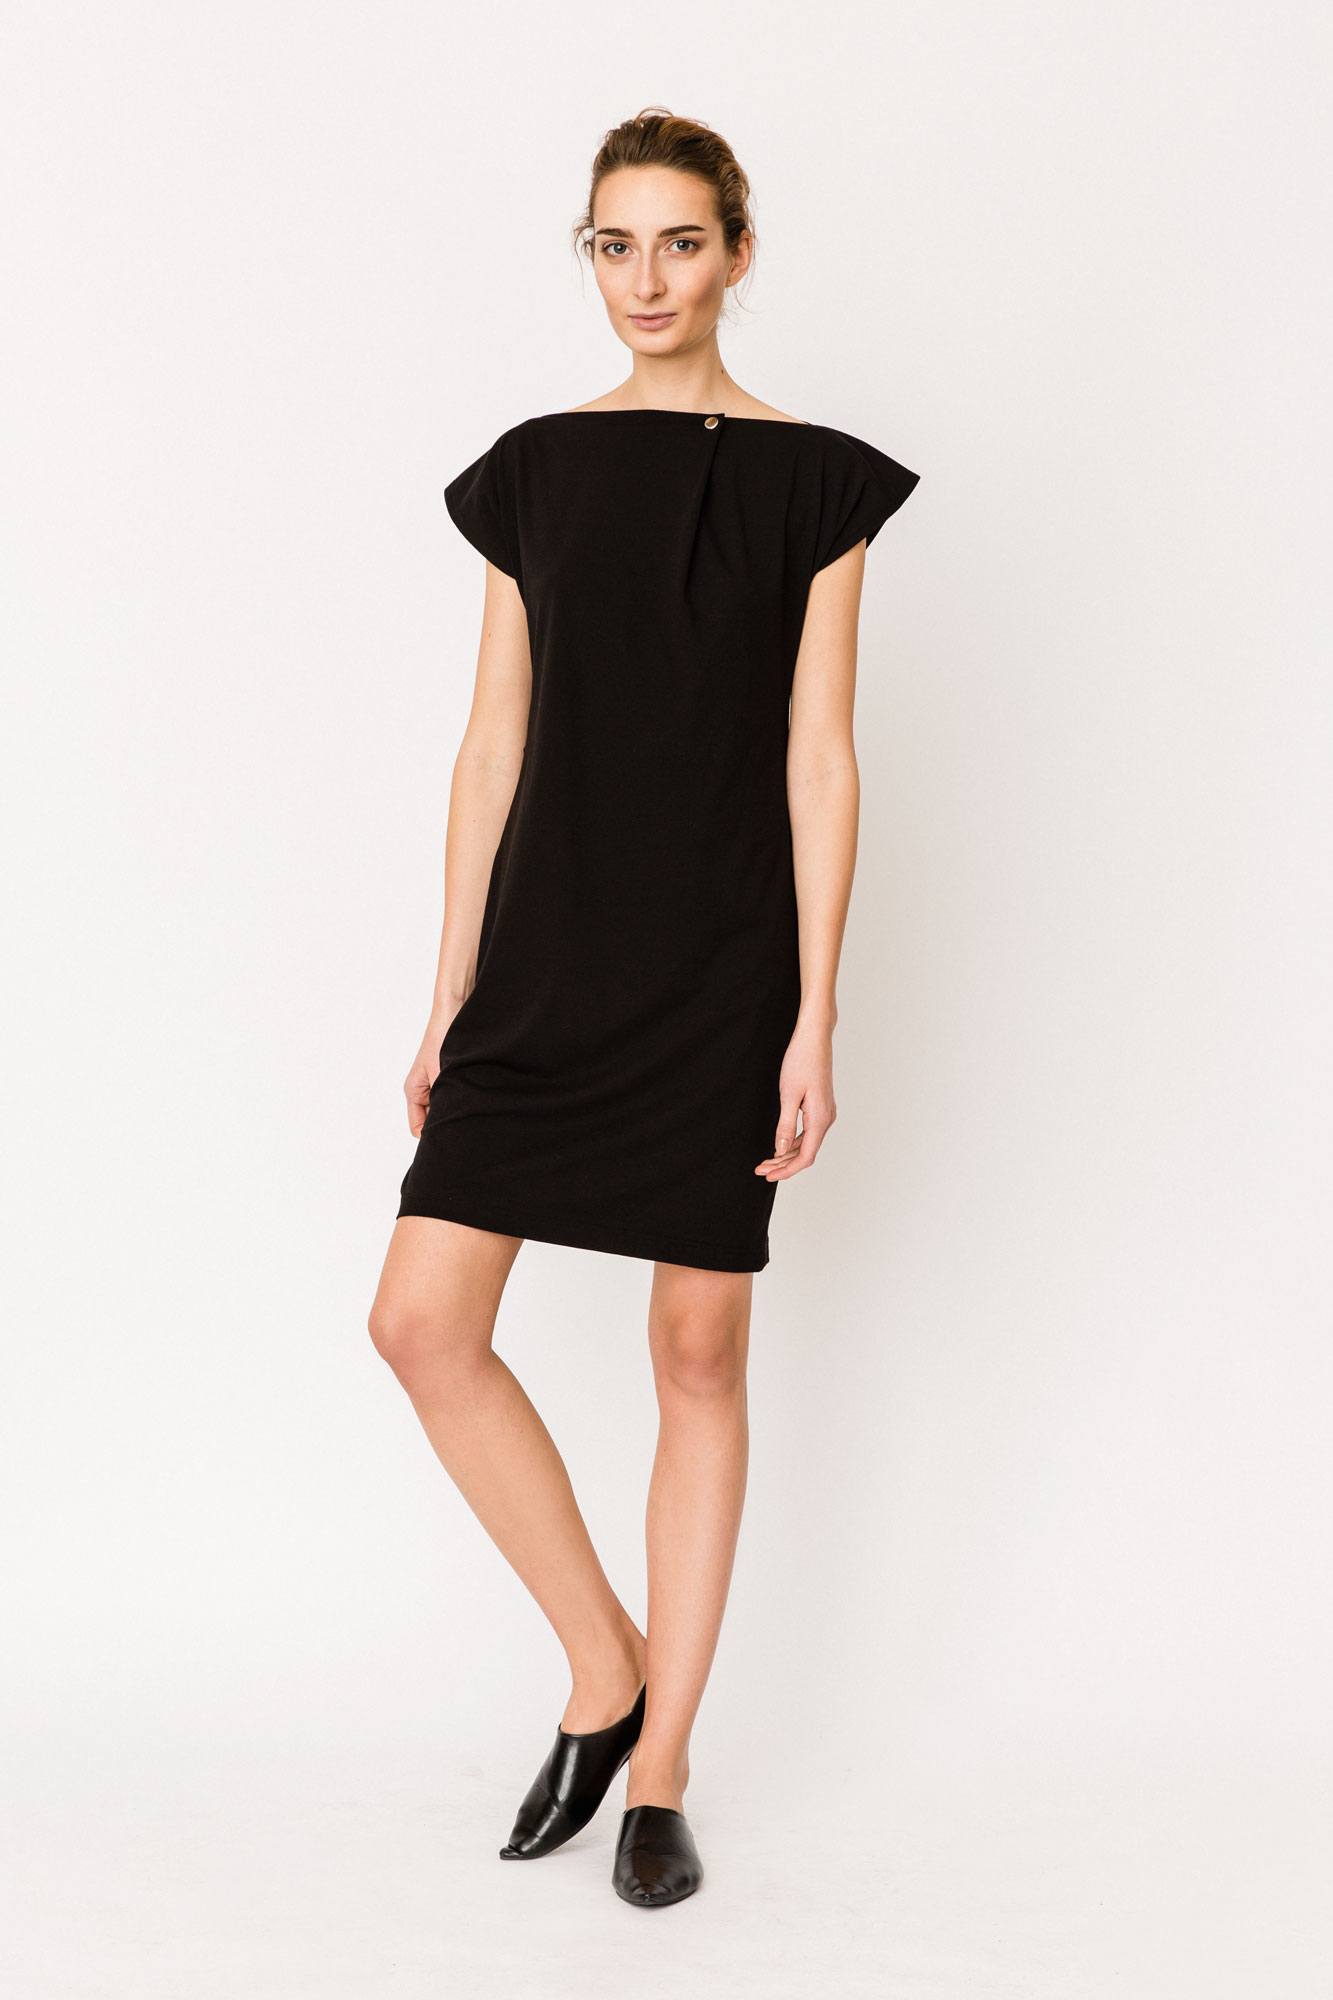 WRNS_BASICS_Bodicek-Dress_01